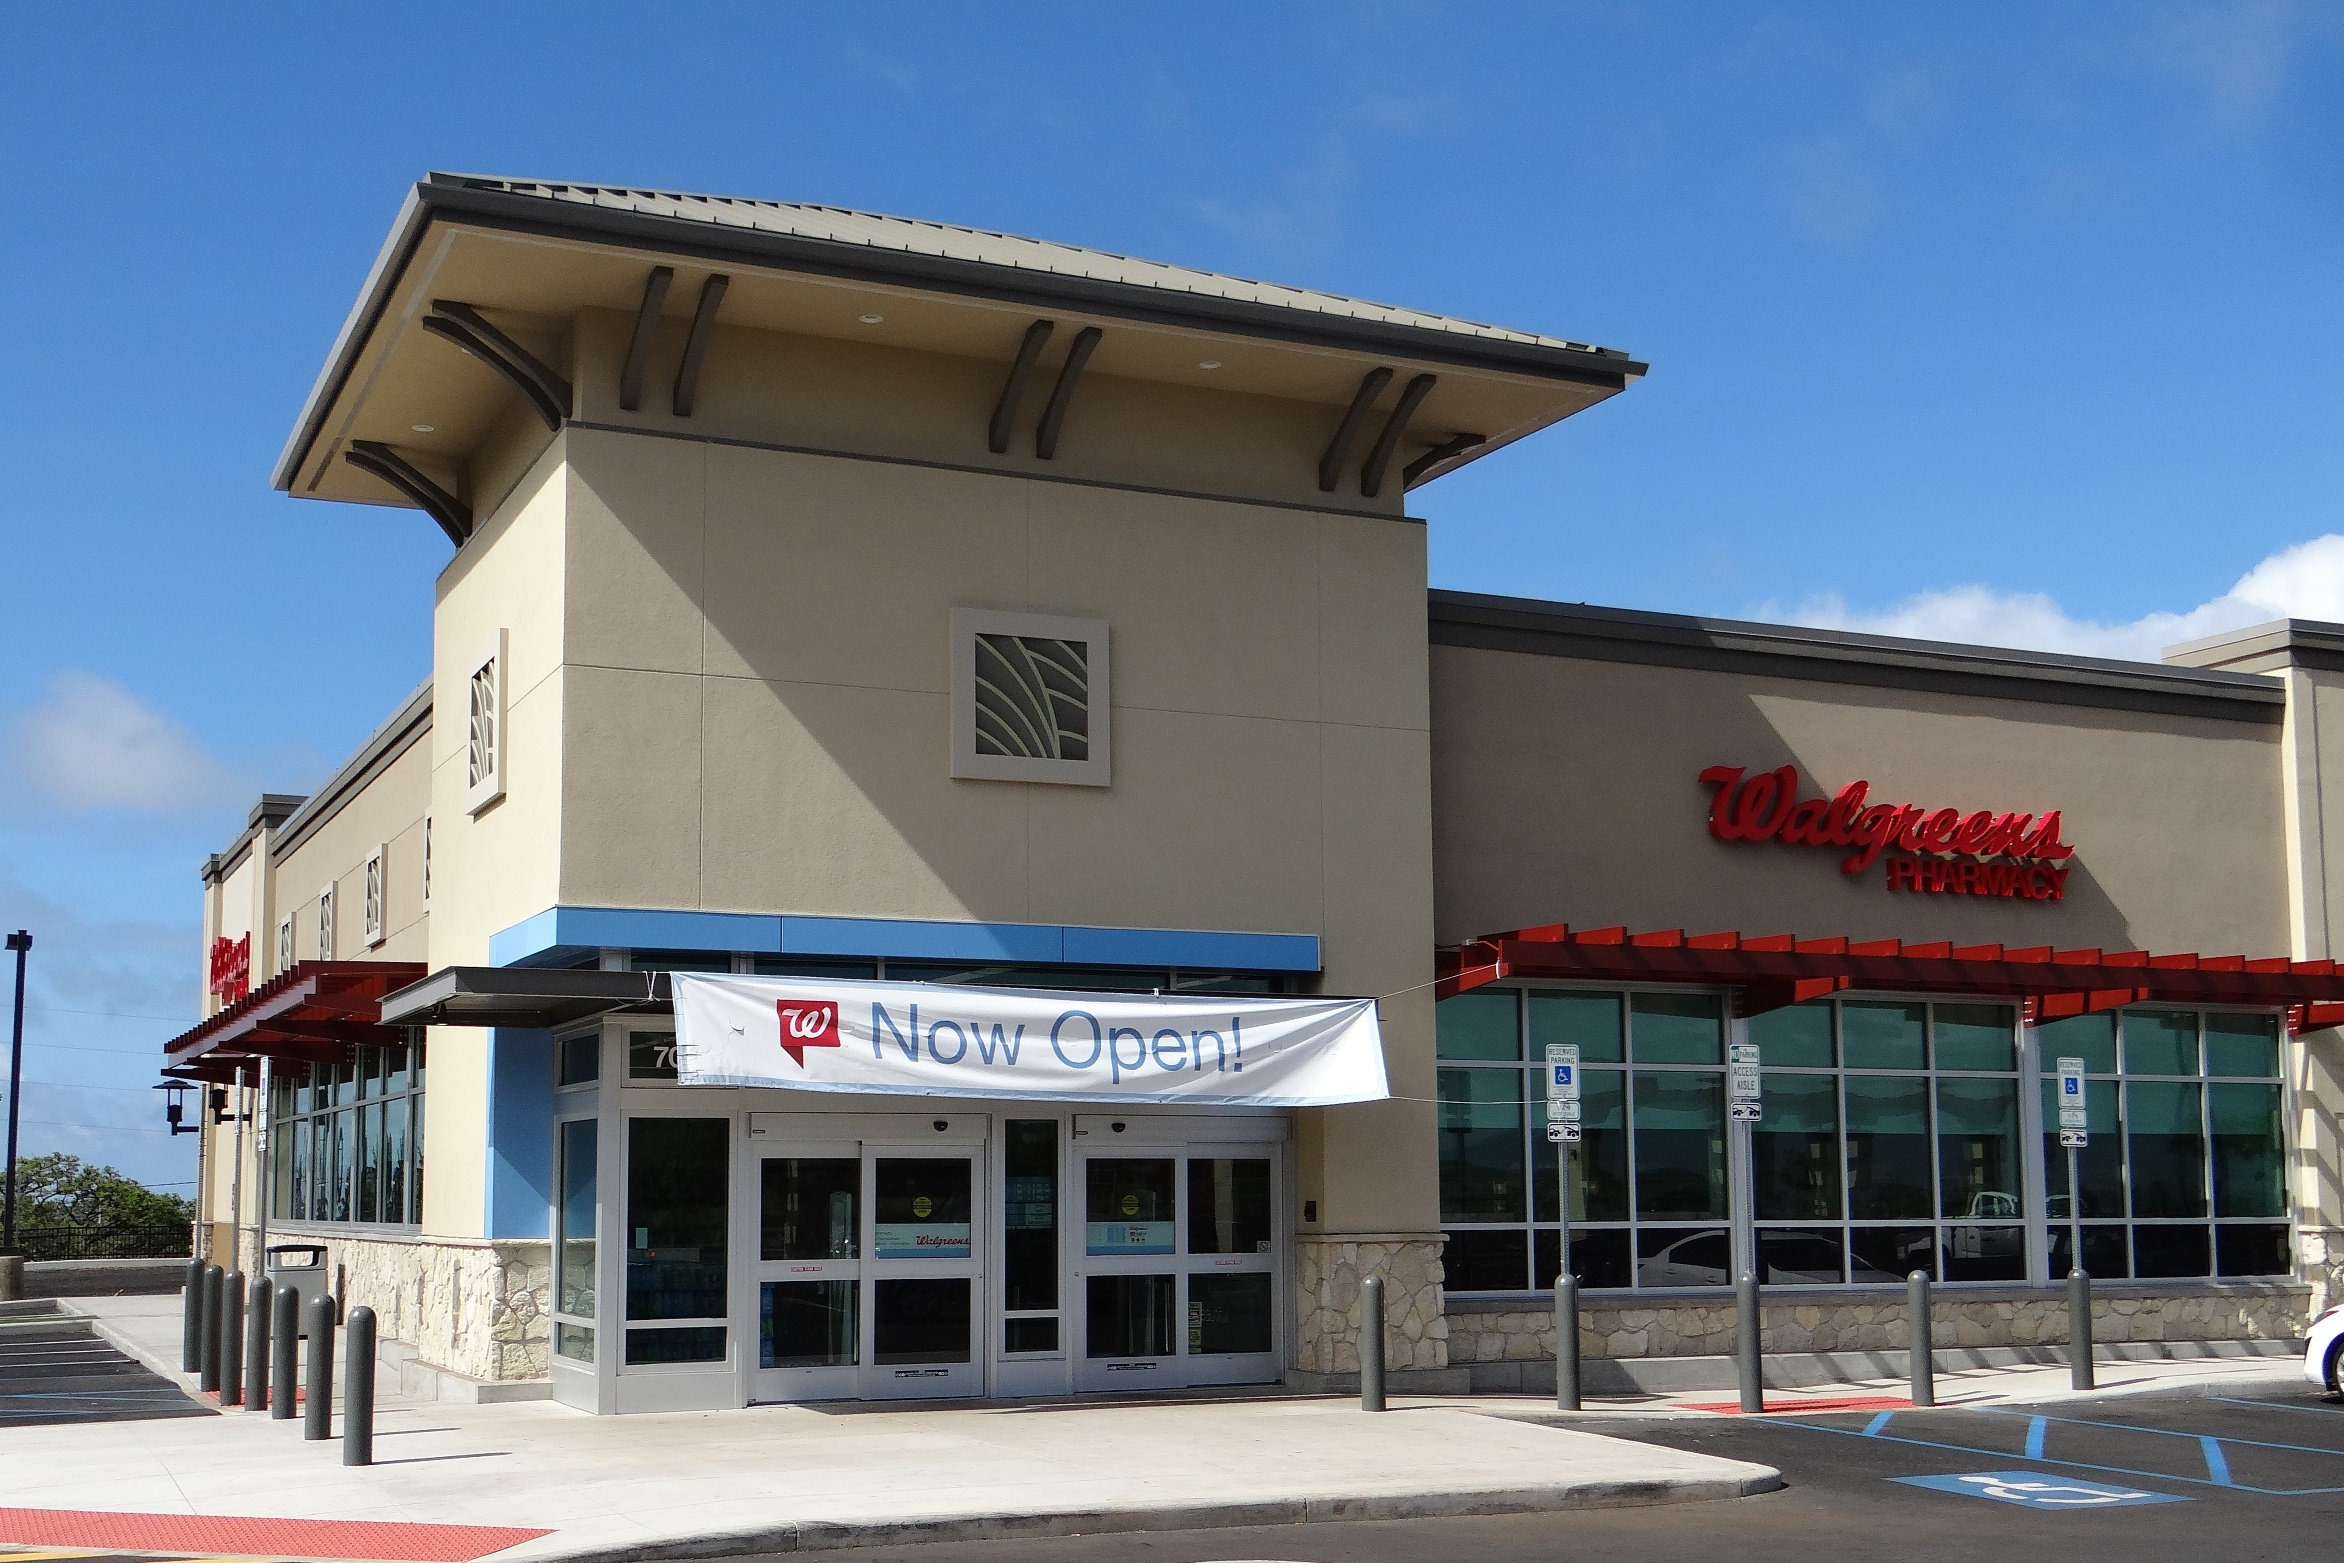 Walgreens Exterior 5 - Good.JPG